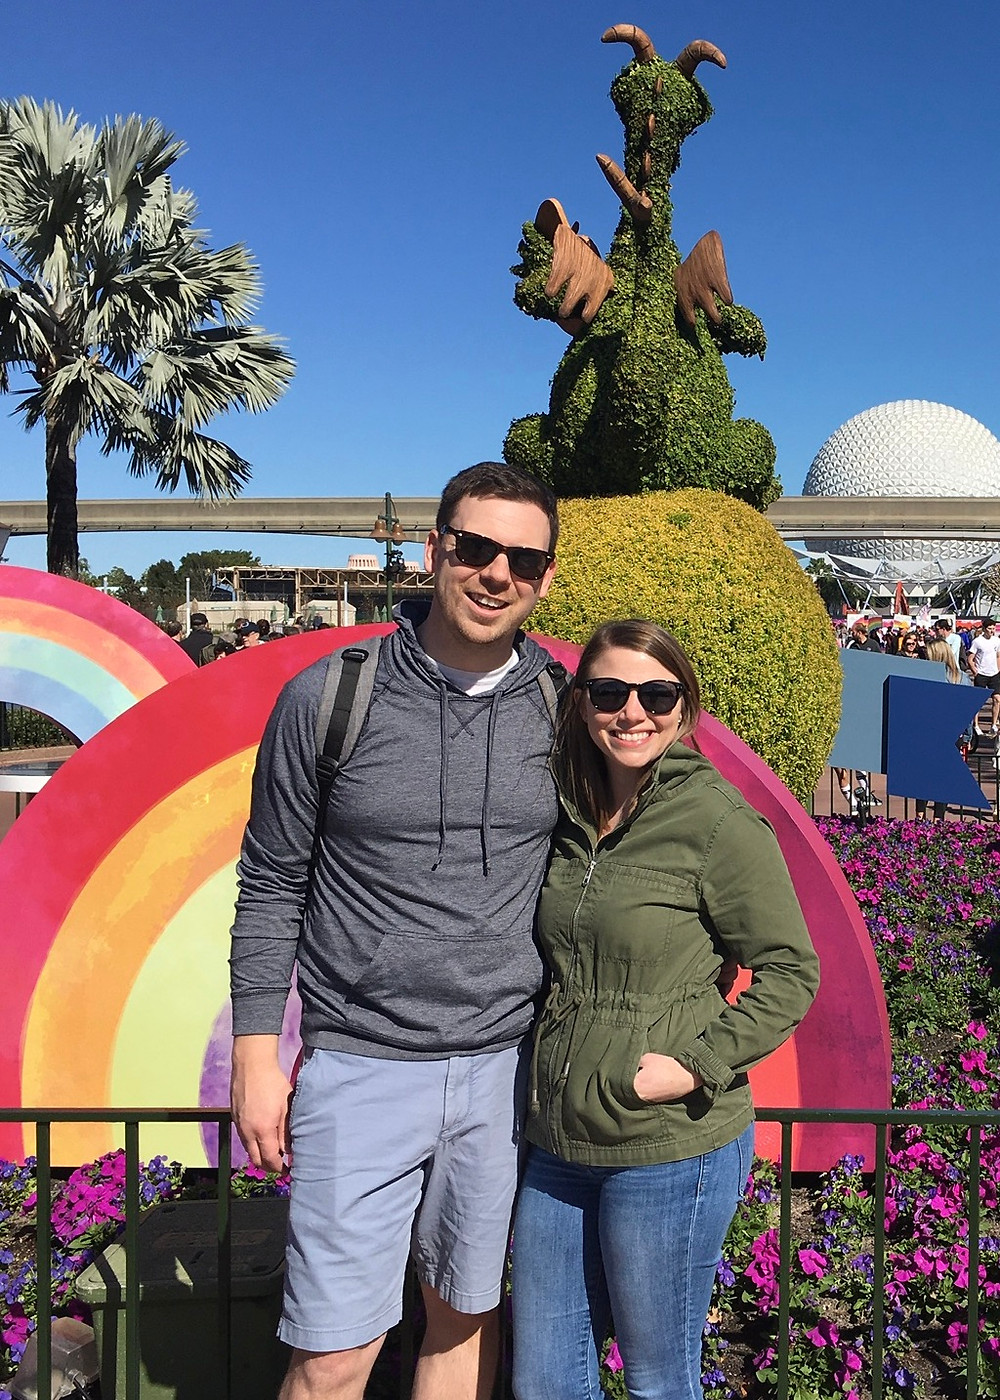 Two people wearing sunglasses at EPCOT in Disney World